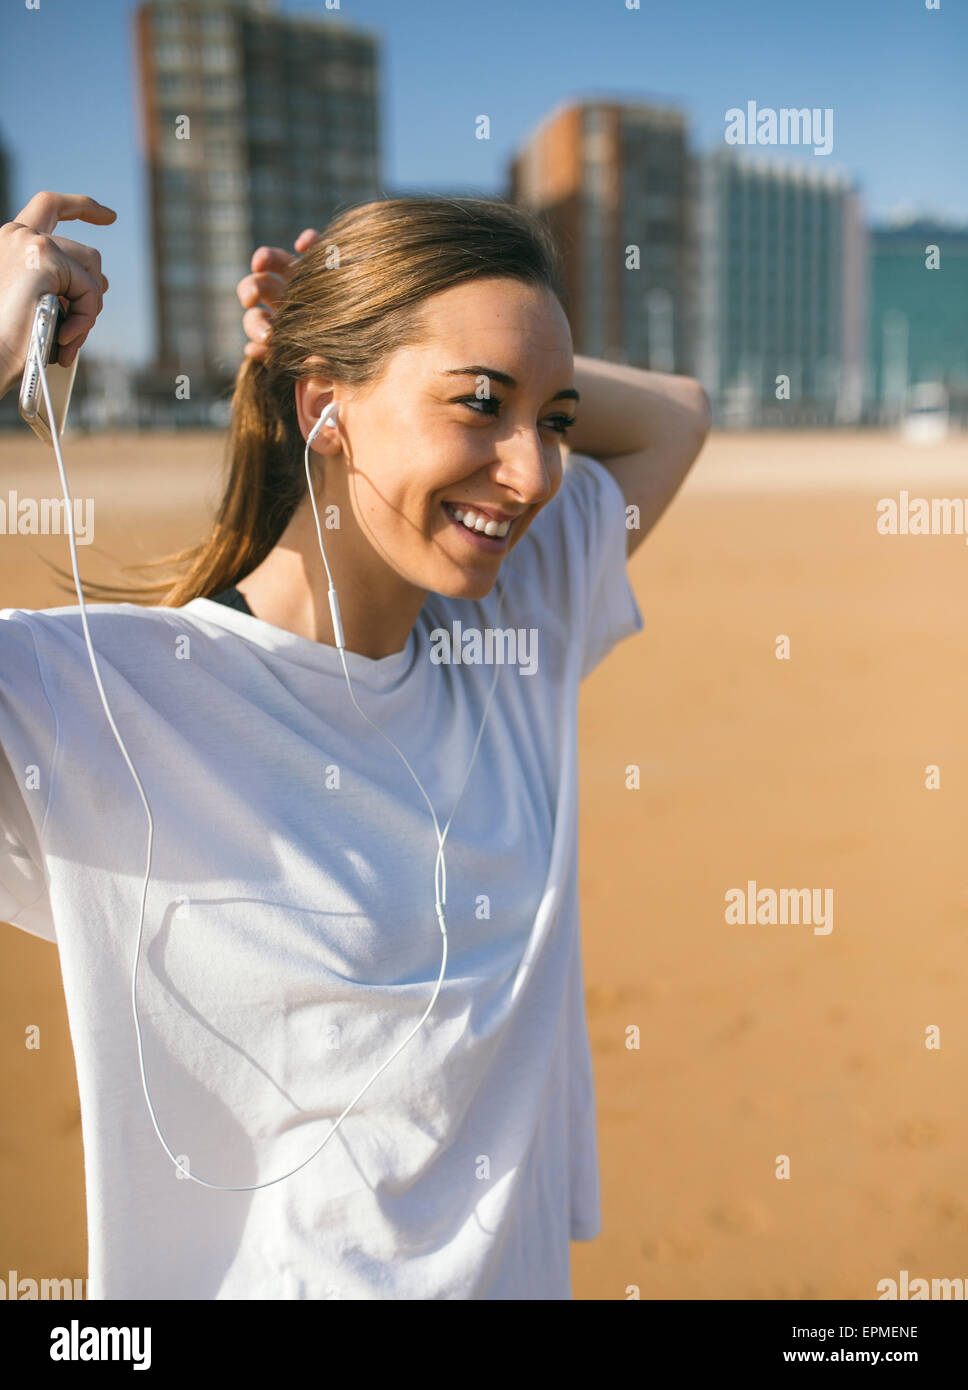 Spain, Gijon, sportive young woman with earbuds on the beach - Stock Image